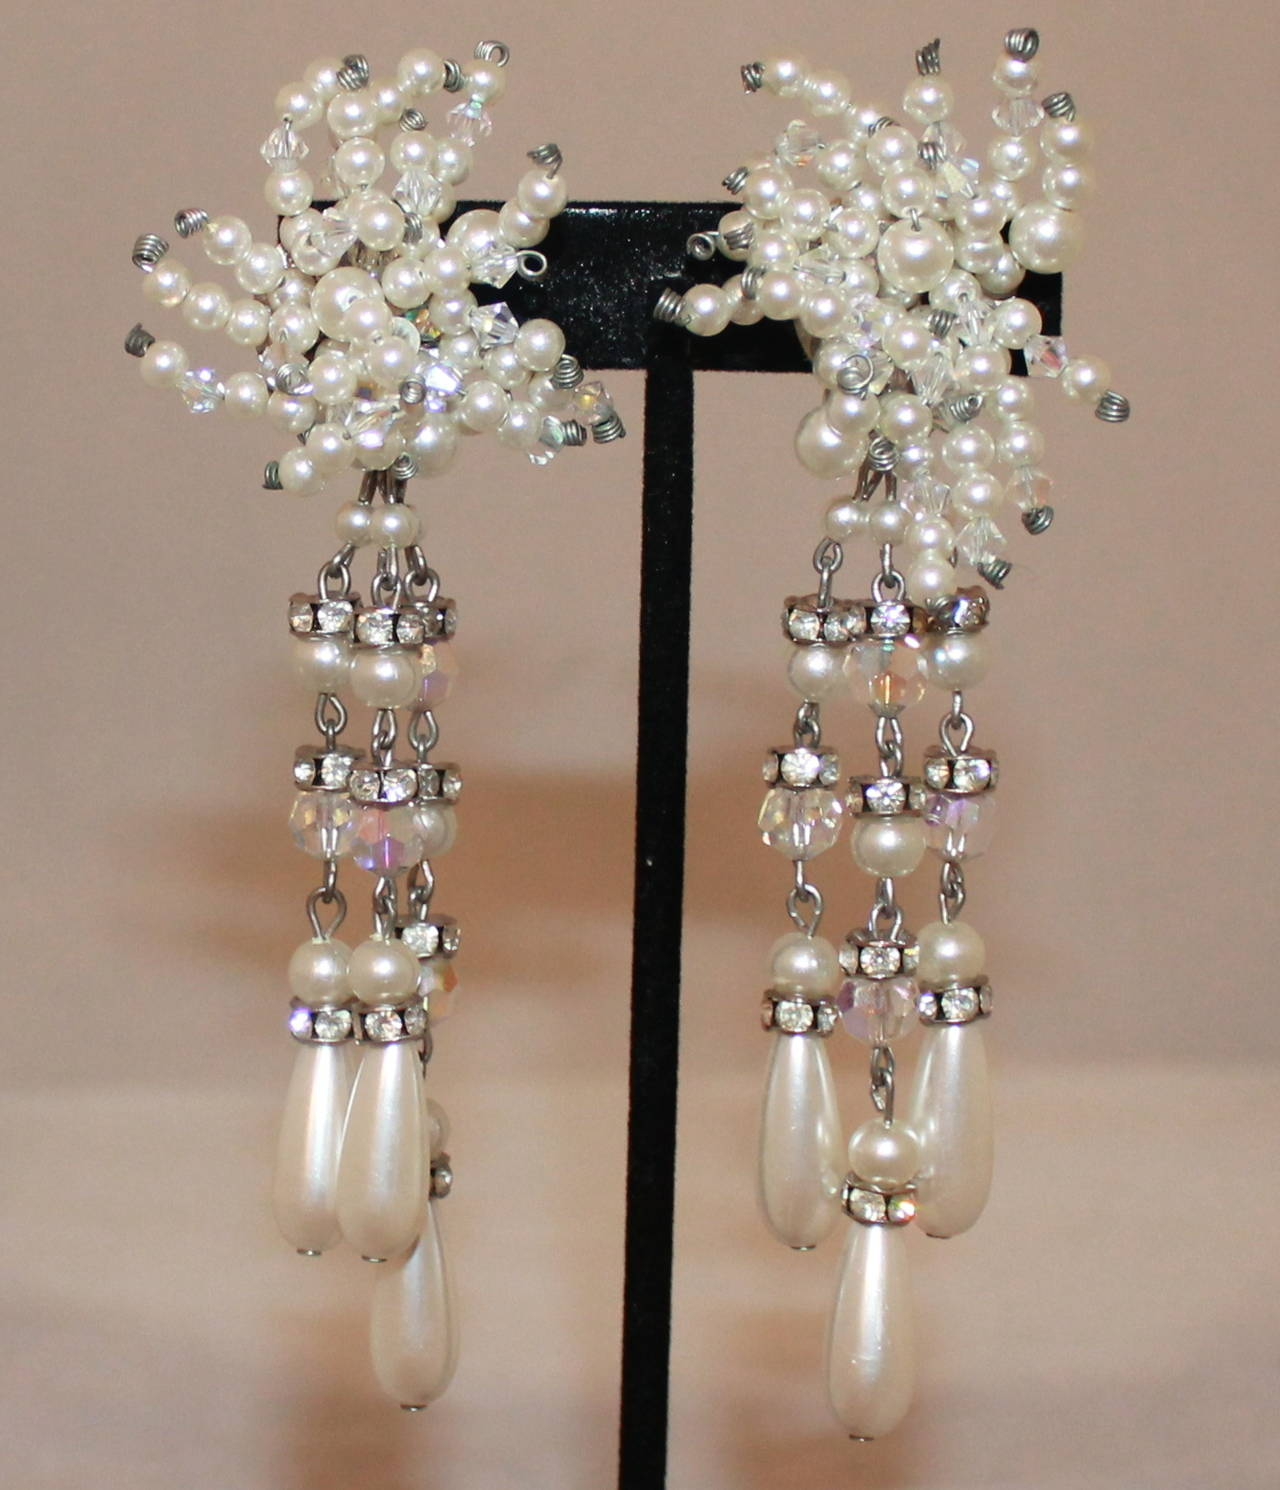 Vintage Art Deco Pearl & Rhinestone Long Earrings - circa 1920s. These earrings are in excellent condition. 